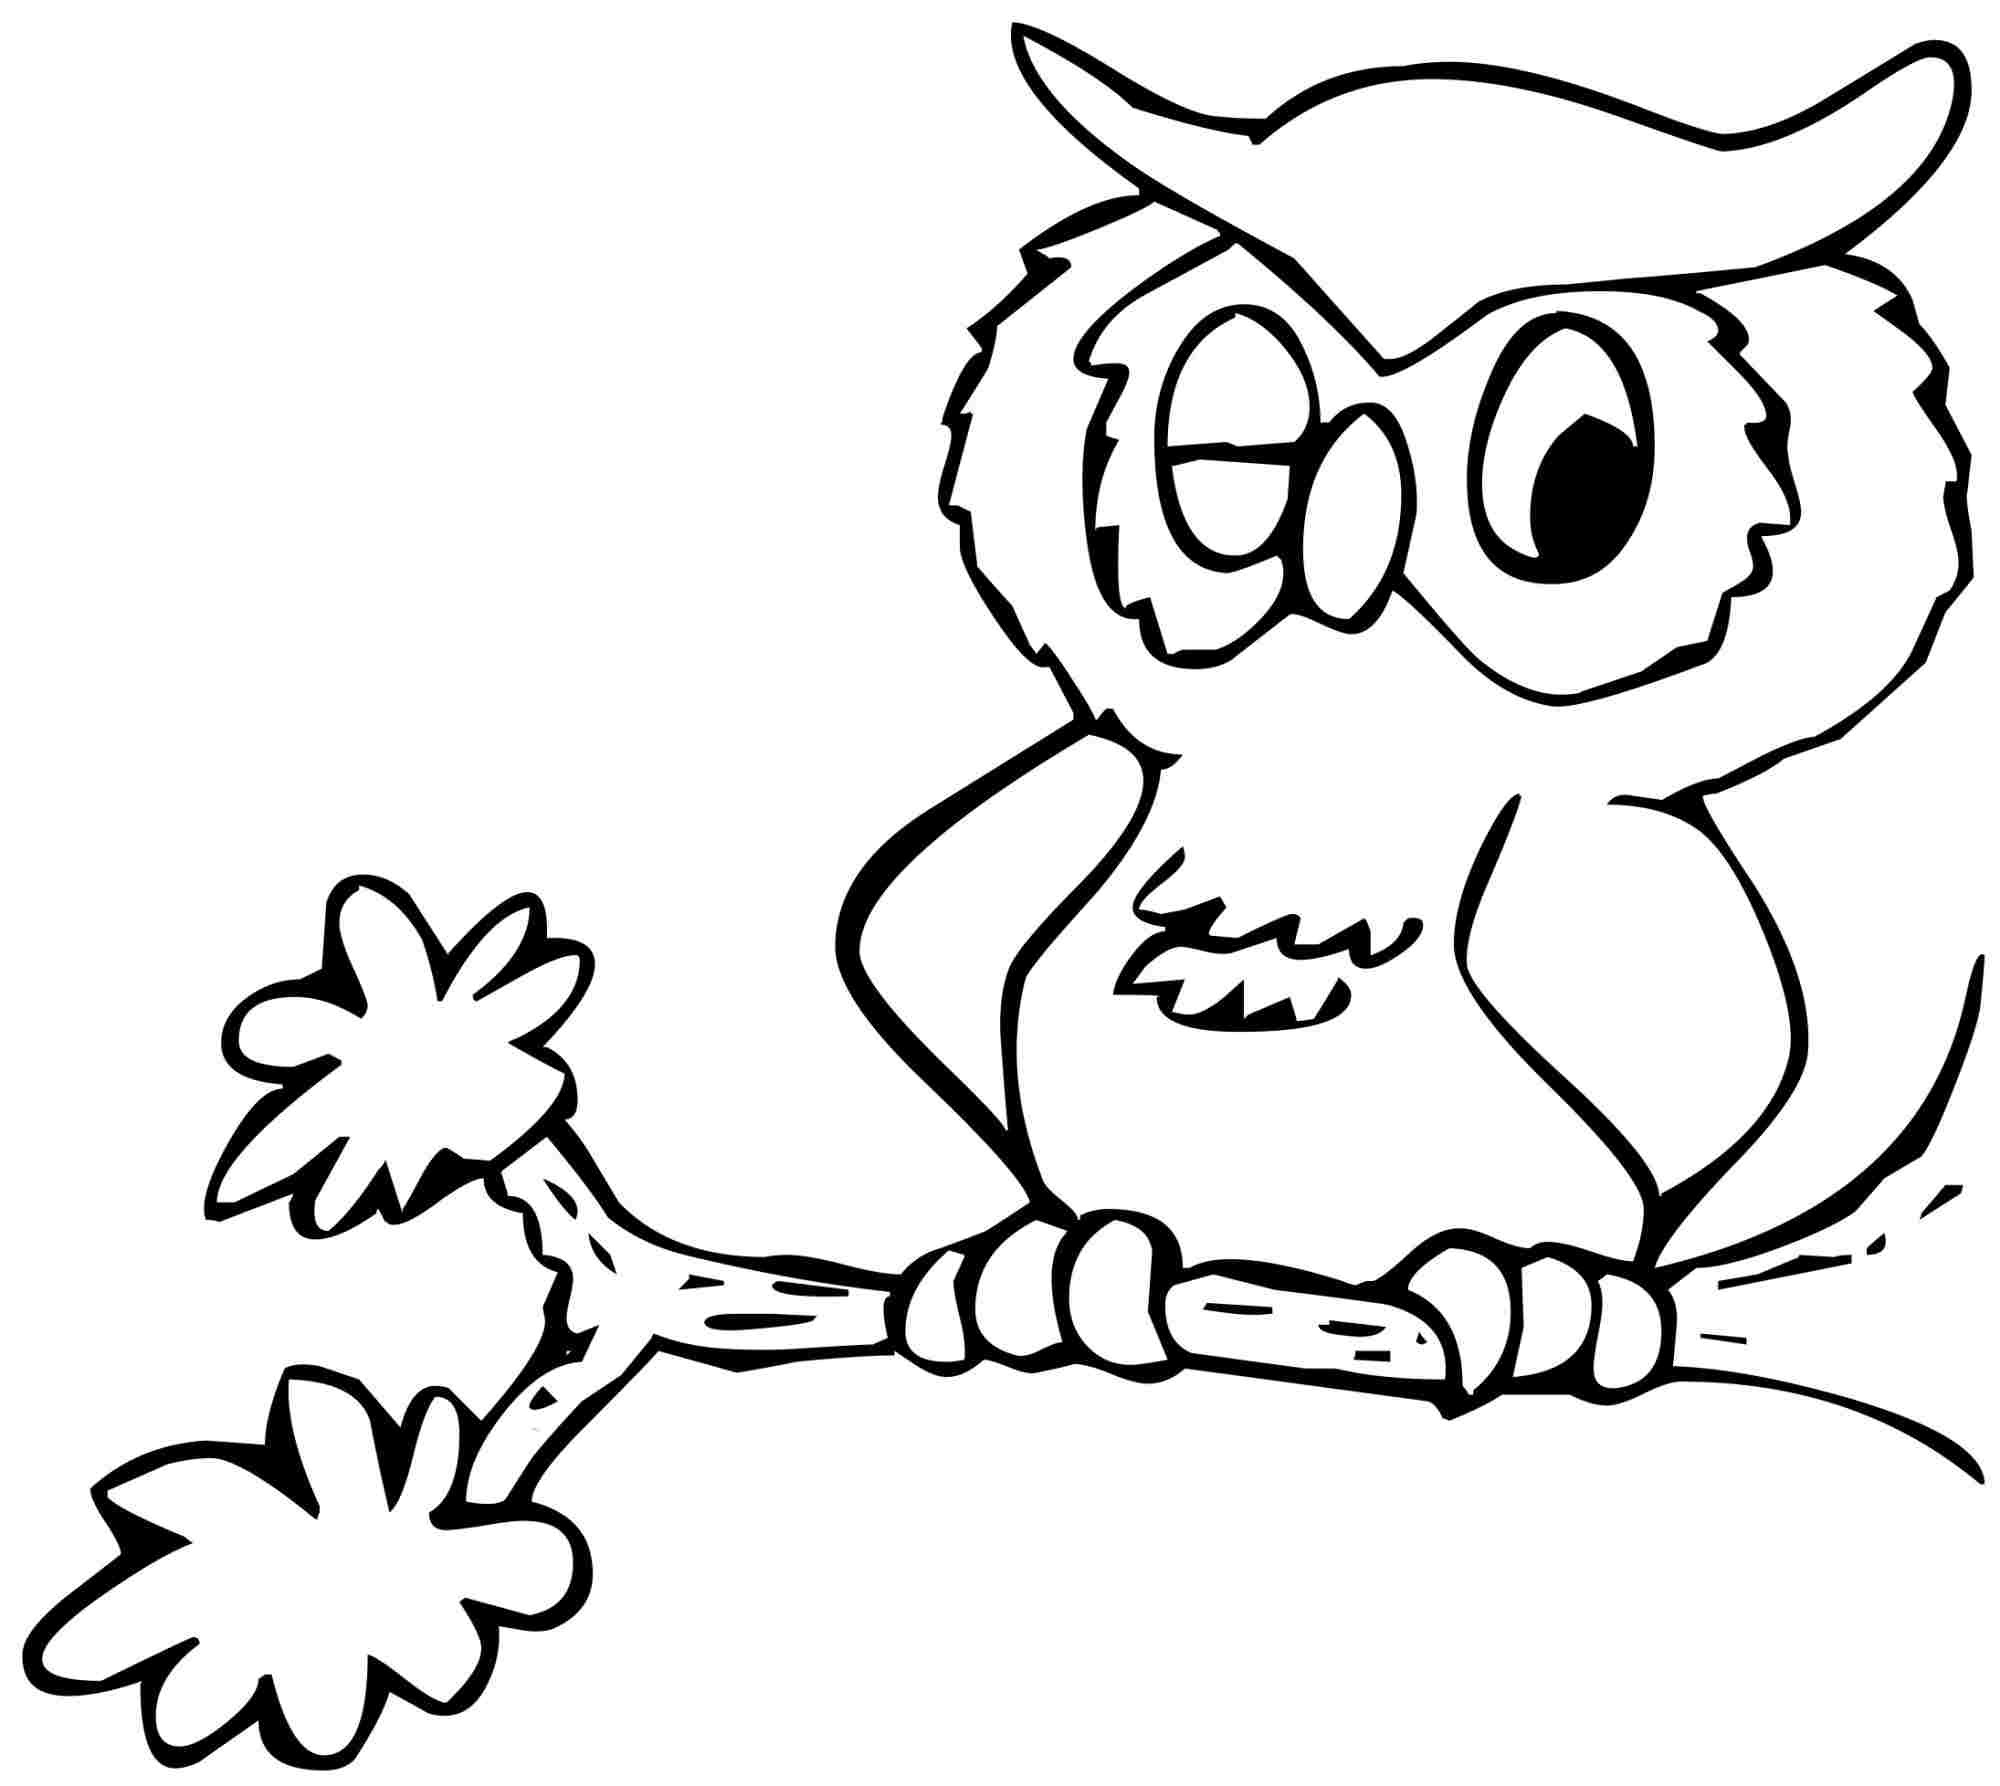 Best ideas about Animal Coloring Pages For Girls . Save or Pin Animal Coloring Pages For Teens Coloring Home Now.